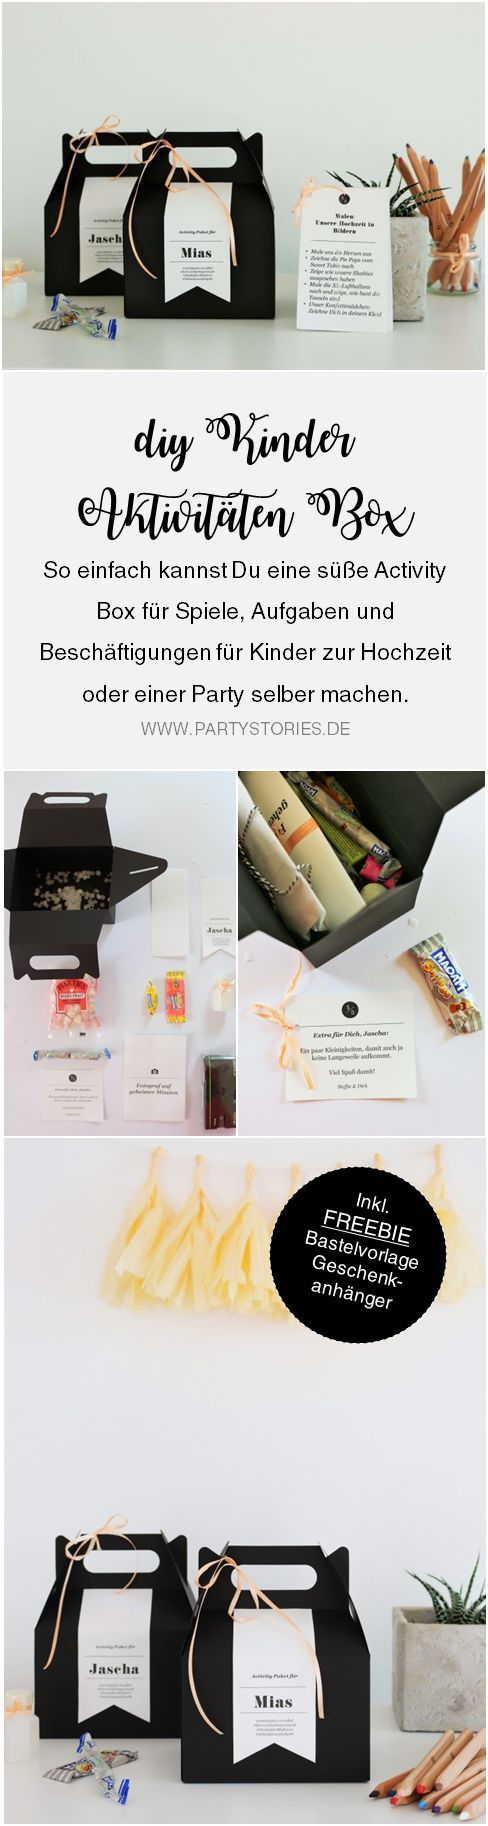 Kids activities box ideas for the wedding and a party